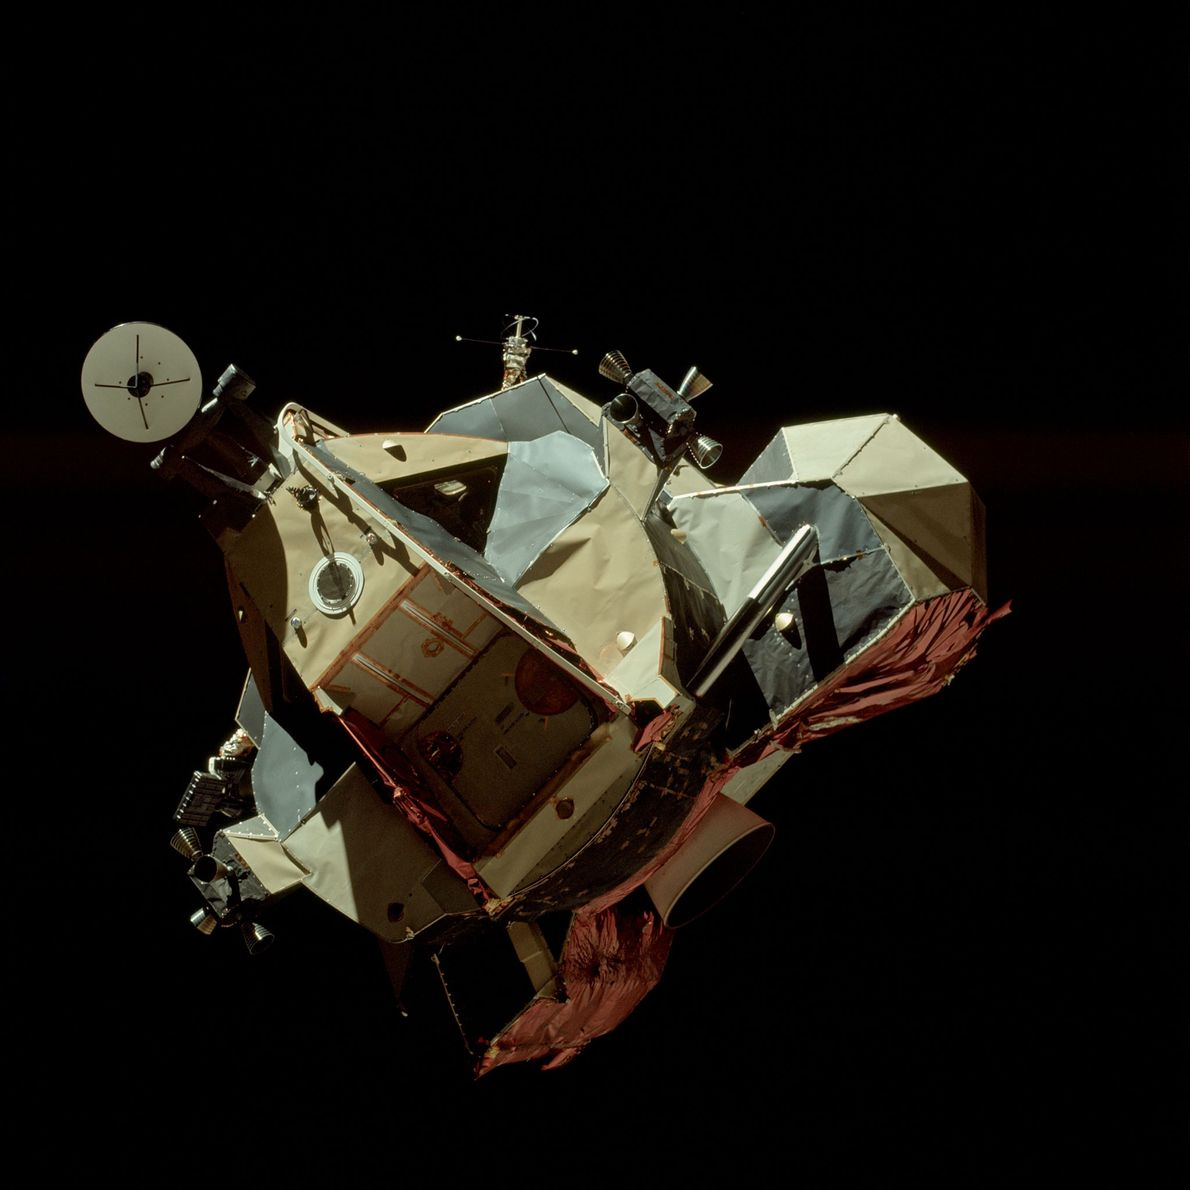 Apollo 17's lunar module, Challenger, taken from the command module during its ascent stage in lunar ...